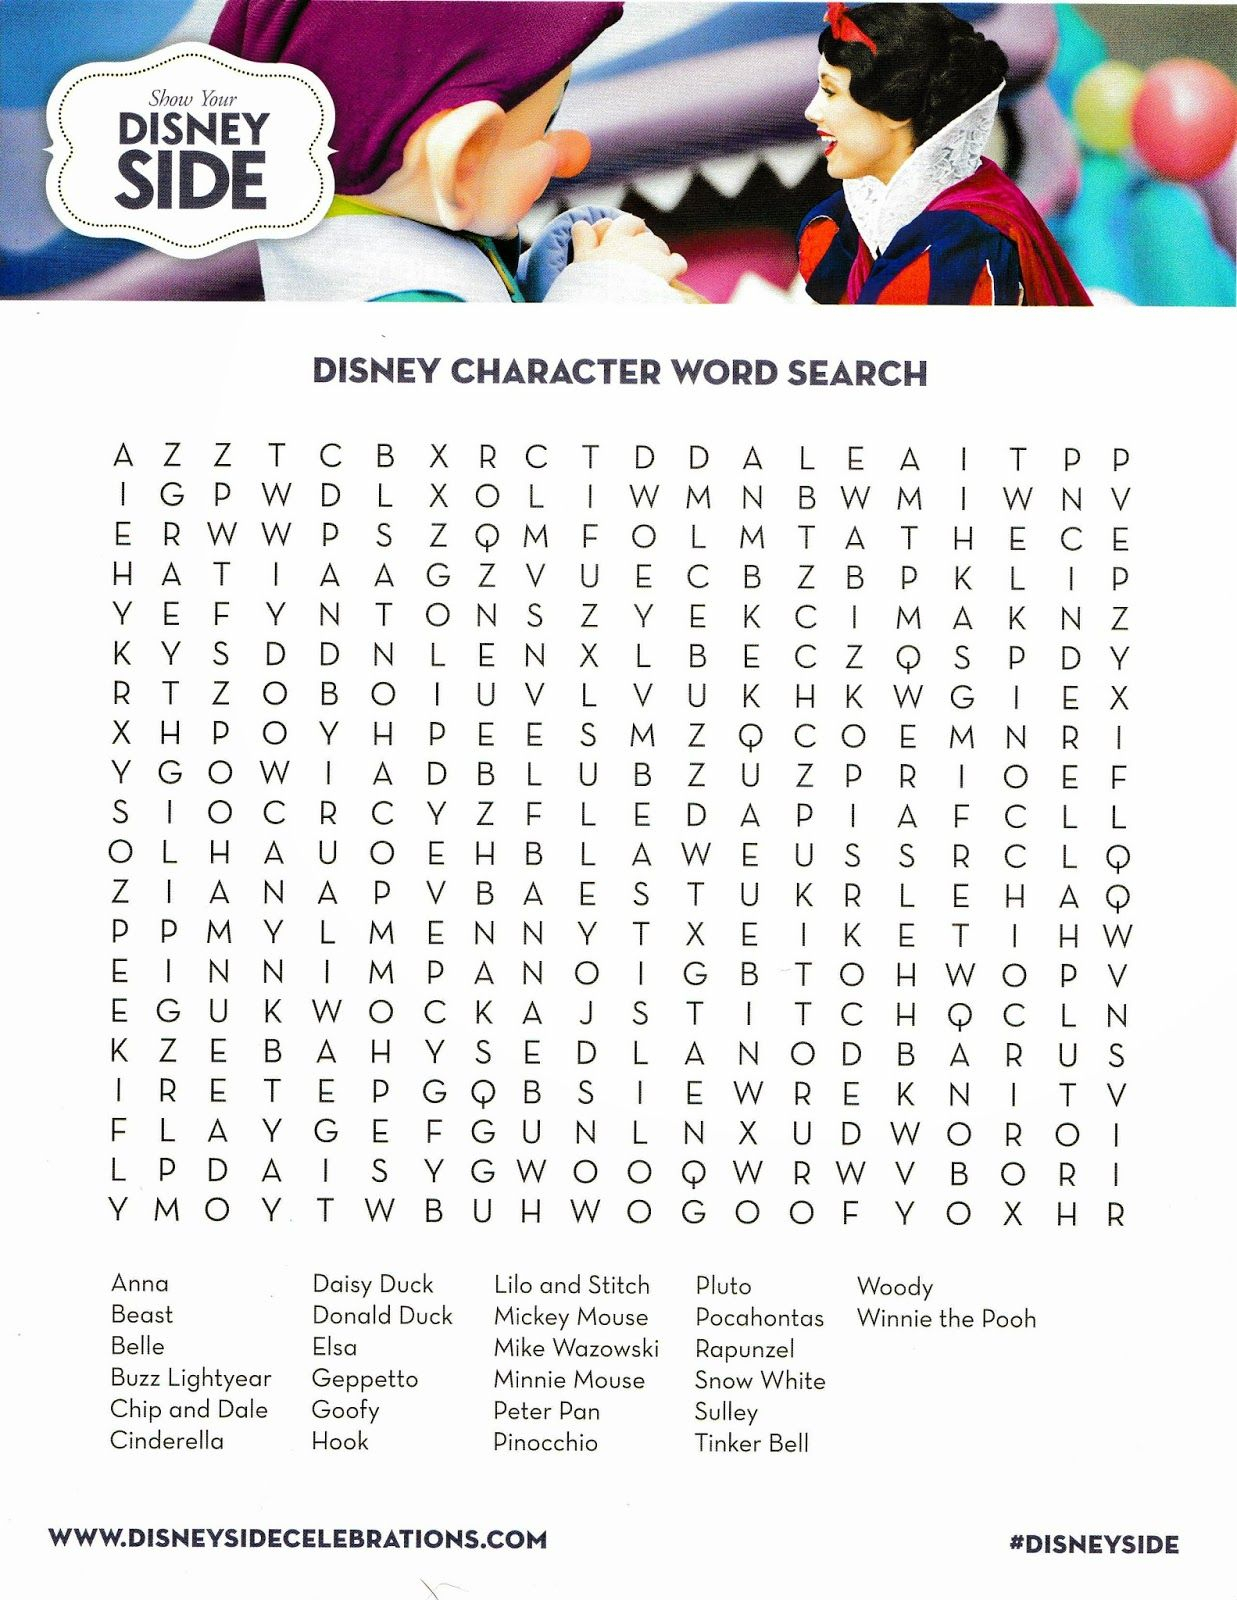 How To Host A Fabulous Disney Side @home Celebration pertaining to Printable Disney Word Search